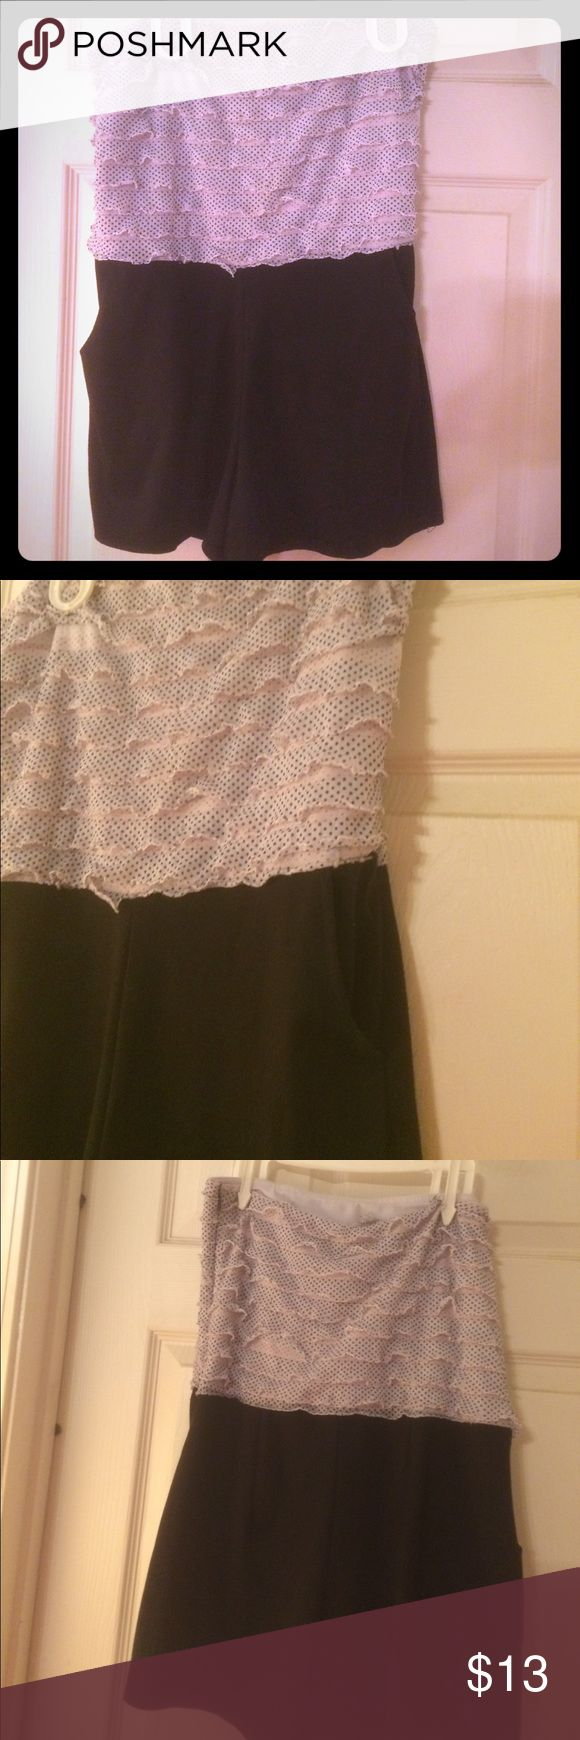 Charlotte Rouse black & white Strapless romper Pretty strapless Romper with ruffles on top of outfit black on bottom with pockets by Charlotte Rouse Charlotte Russe Other